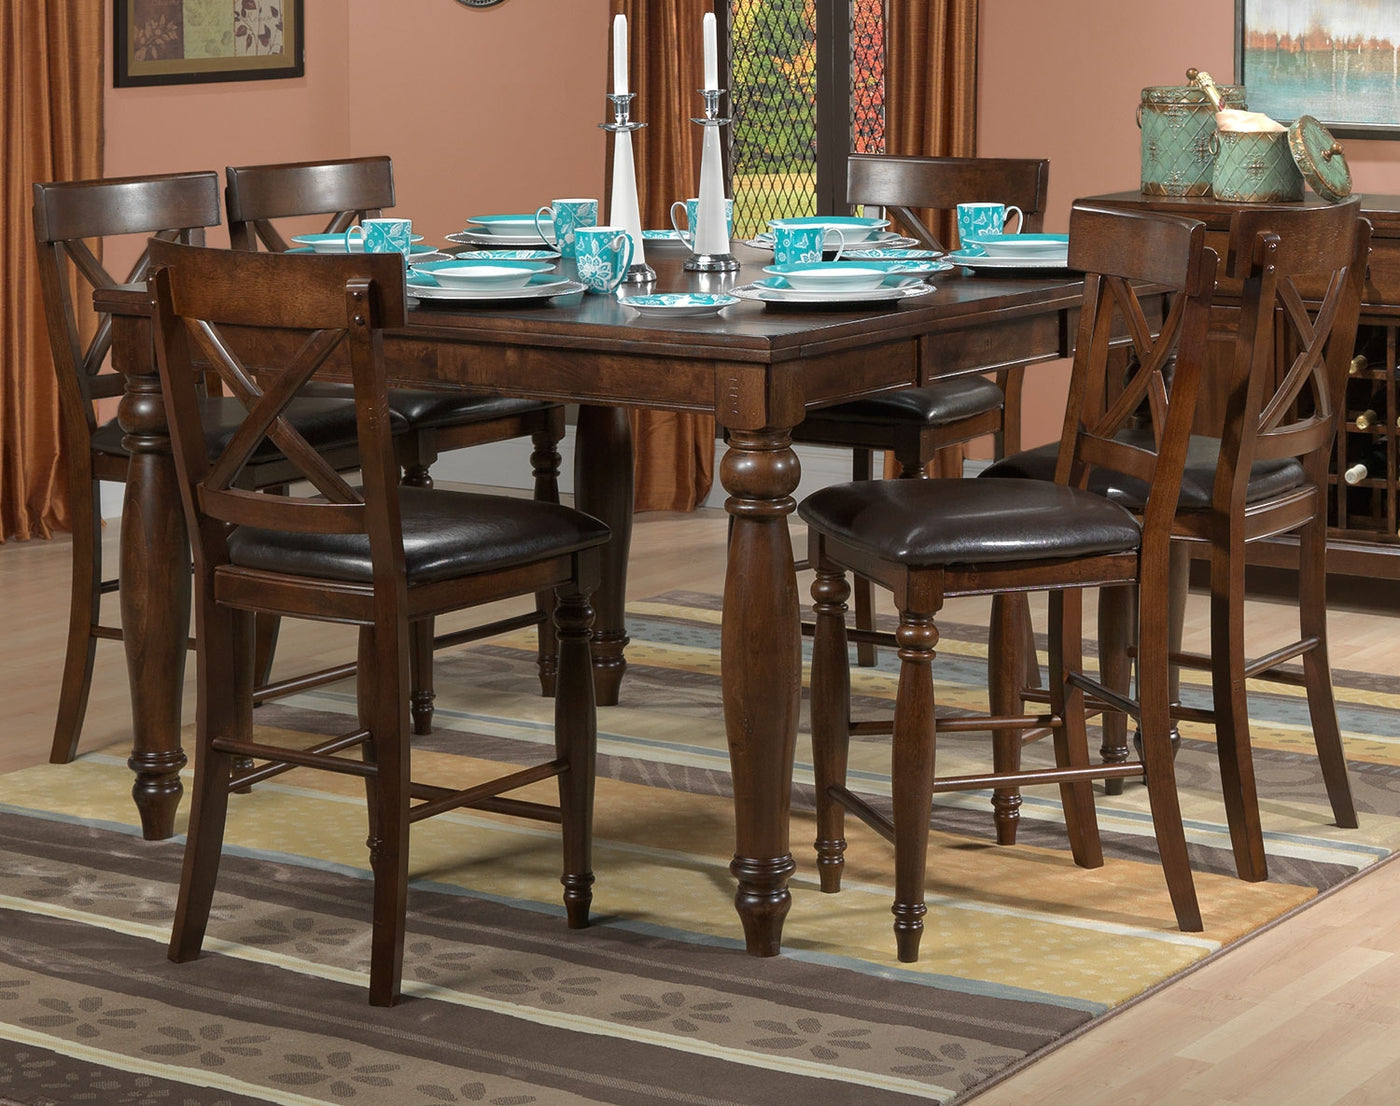 Kingstown pub height dining table chocolate write a review sku 23542903 kingstown pub height dining table chocolate